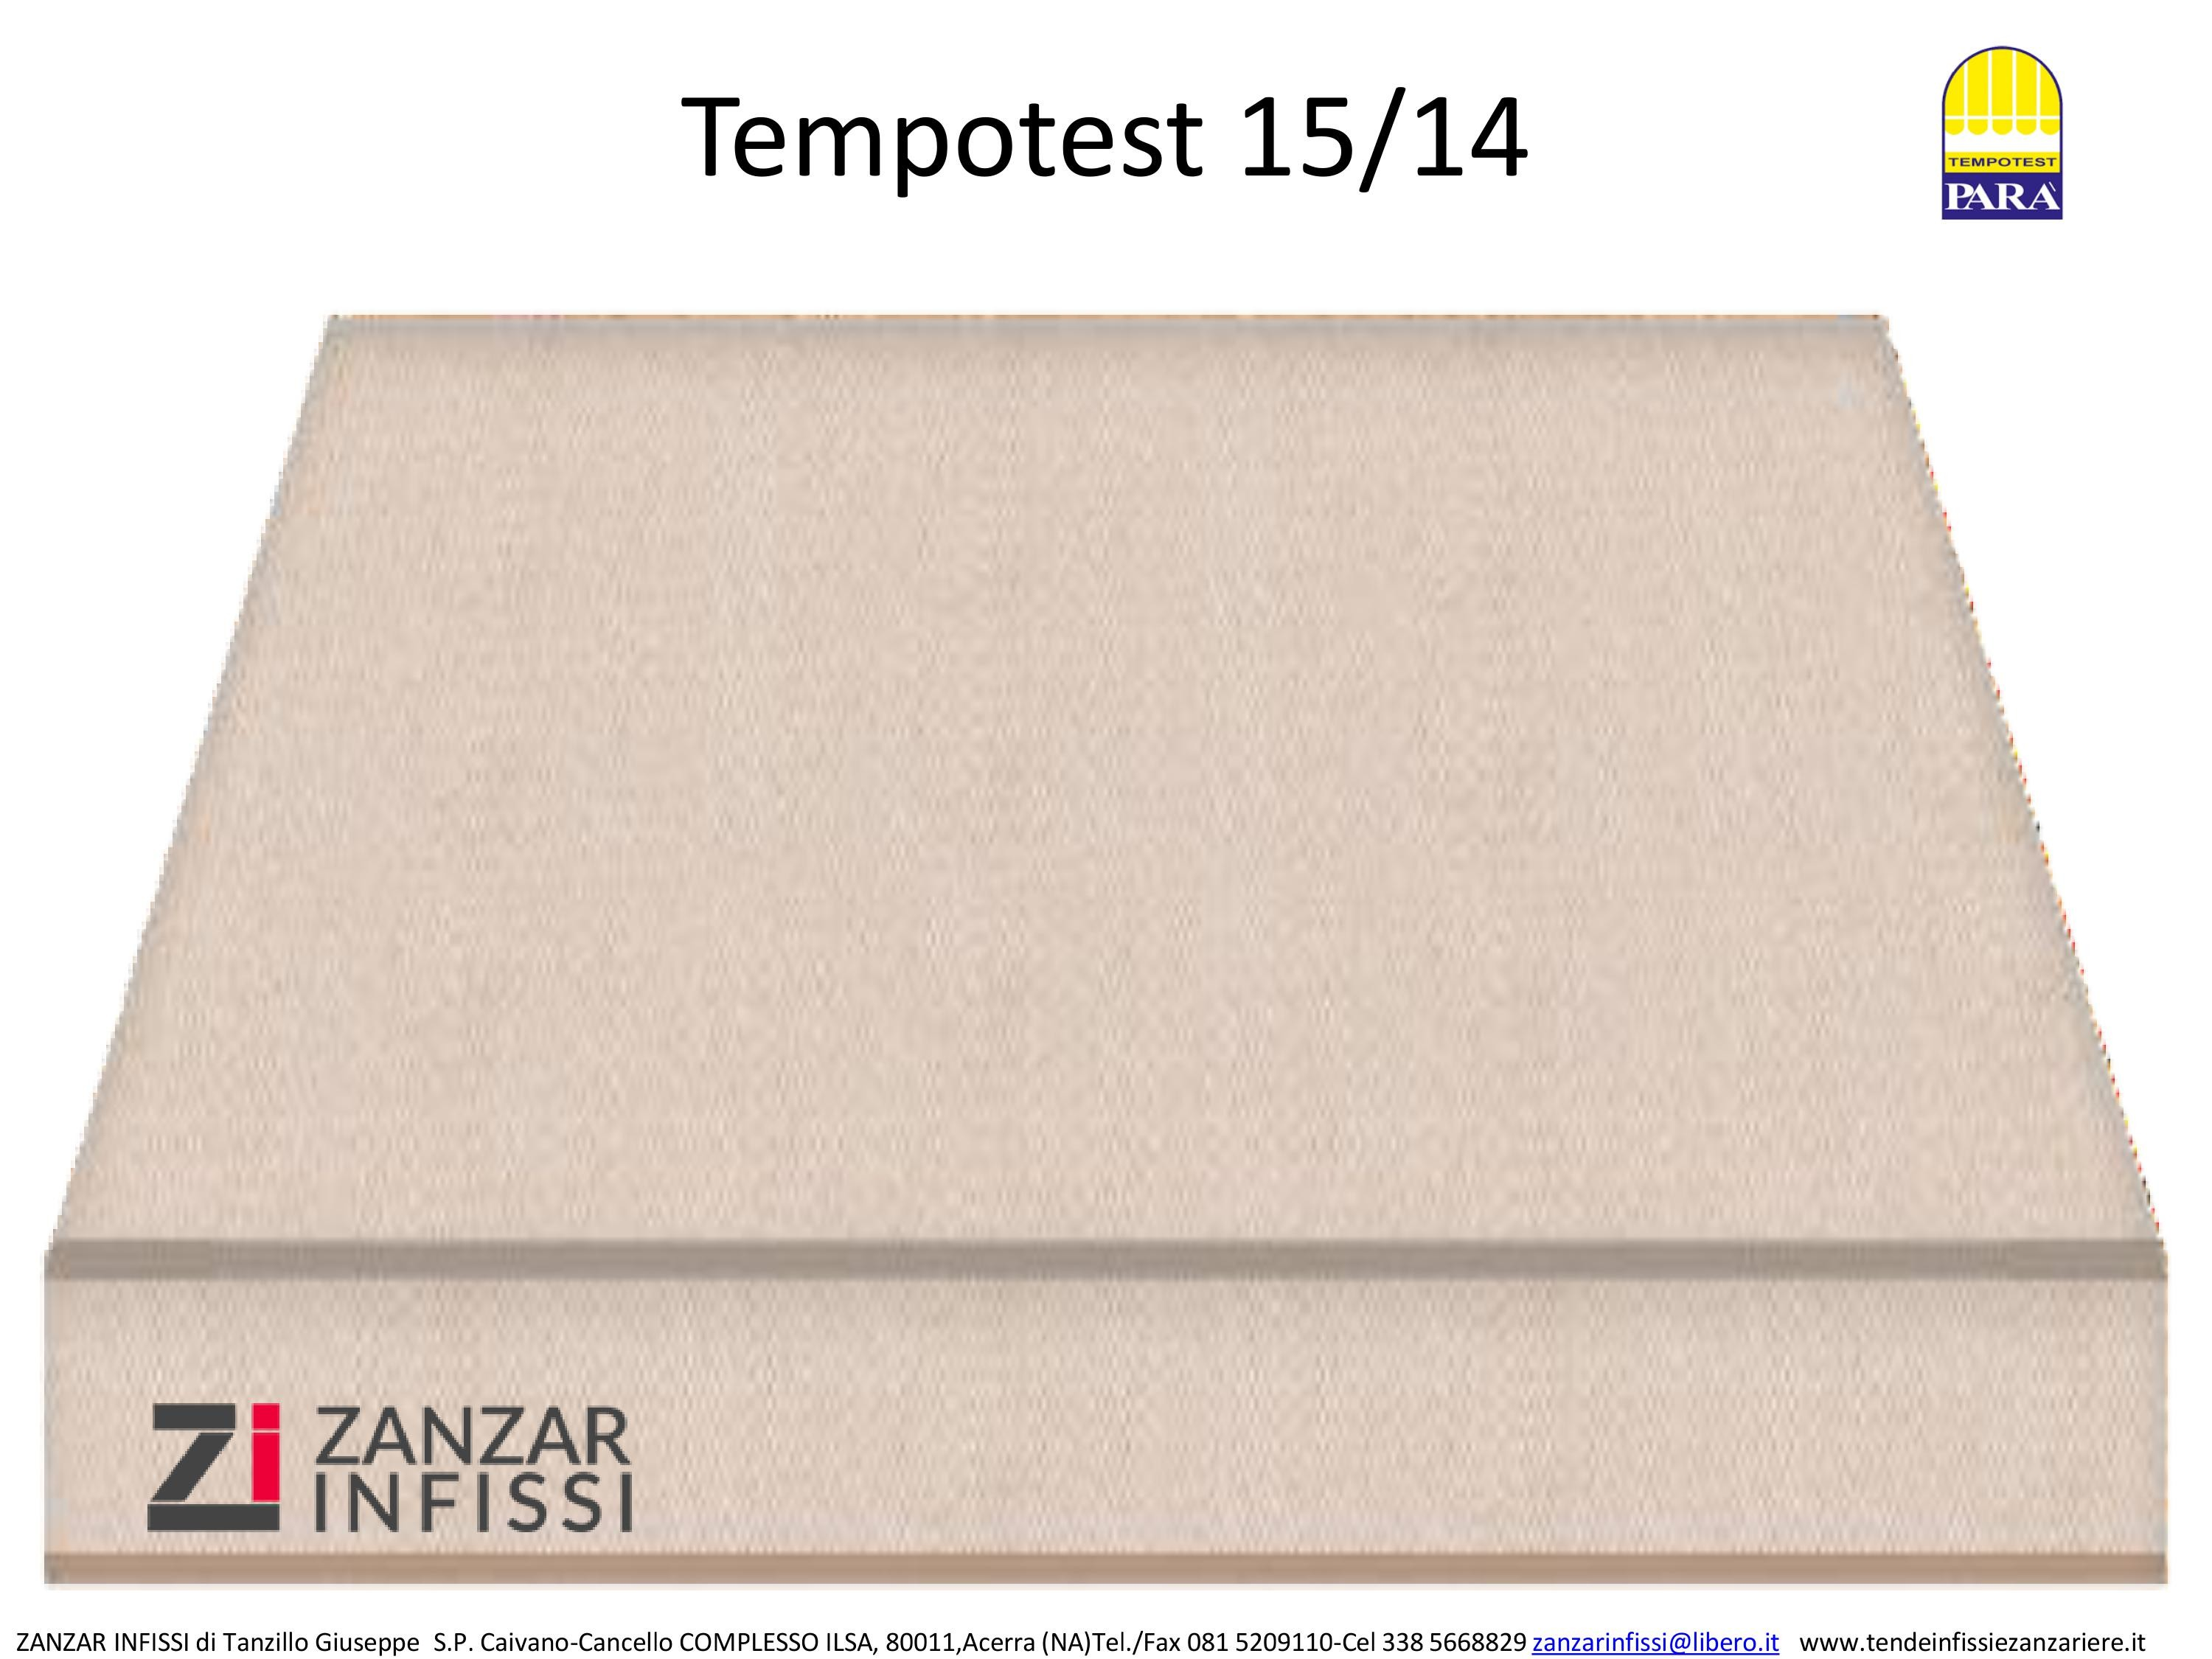 Tempotest 15/14